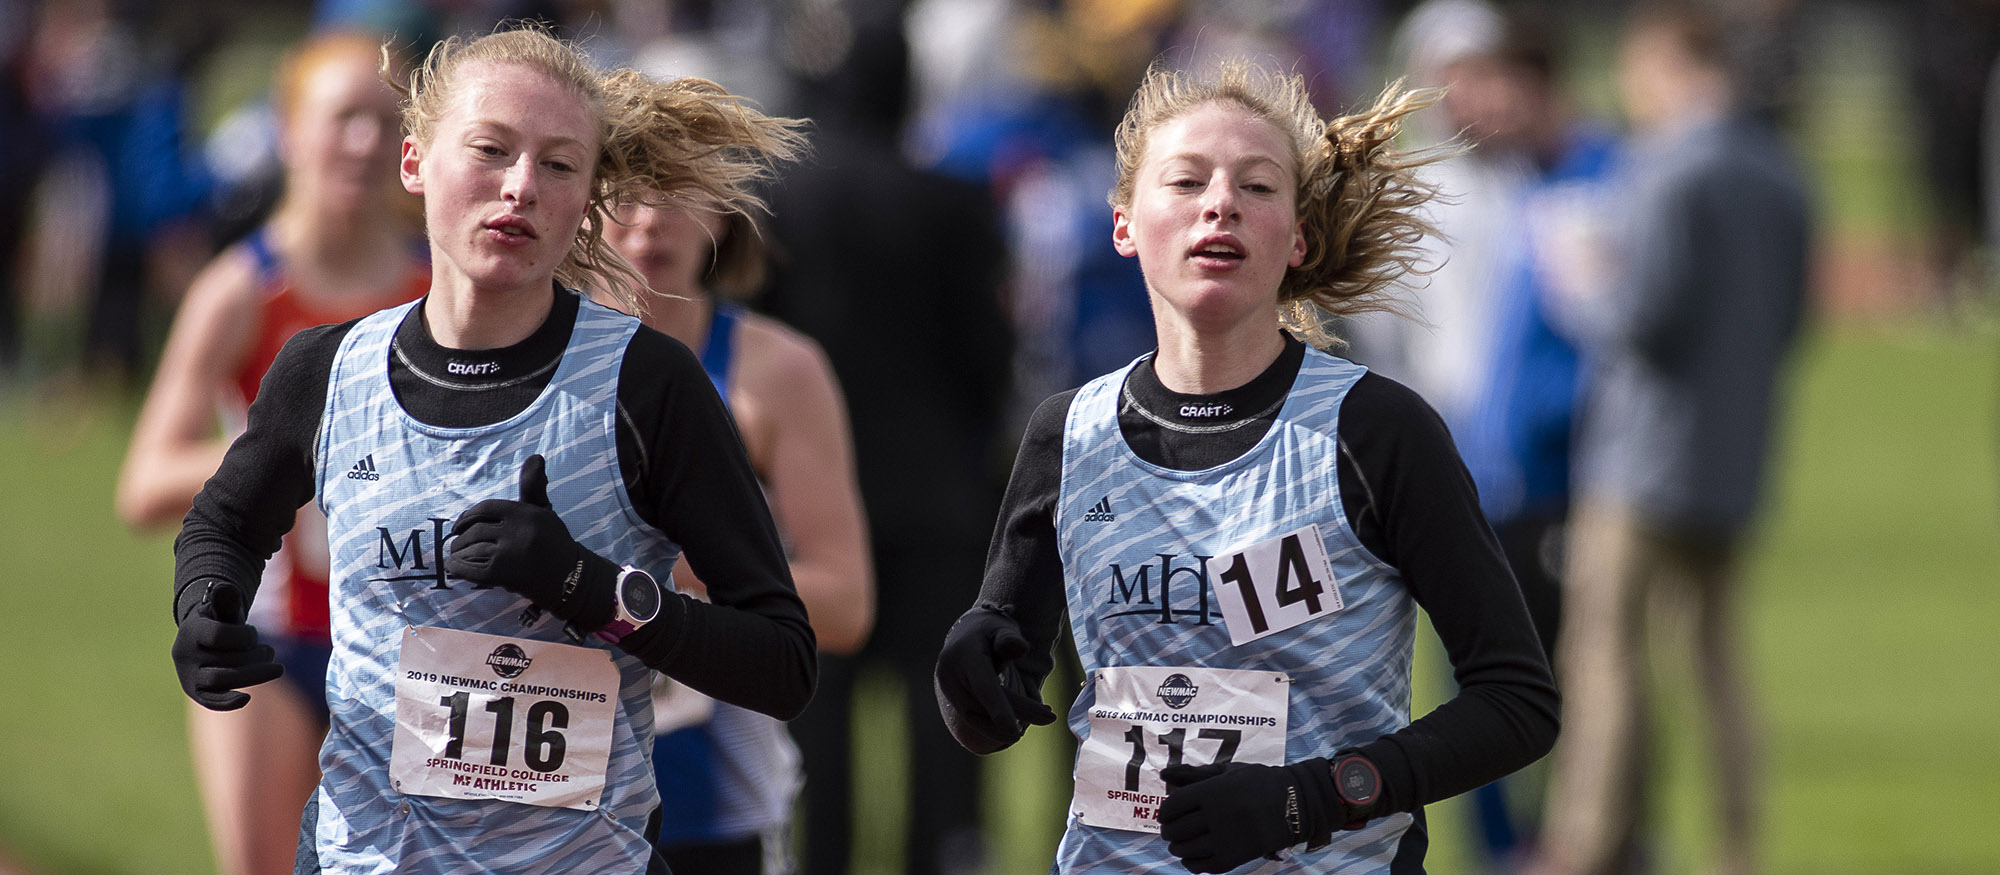 Action photo of Hannah and Madeline Rieders in the 10,000-meter run at the 2019 NEWMAC Championships. Photo courtesy of Frank Poulin.